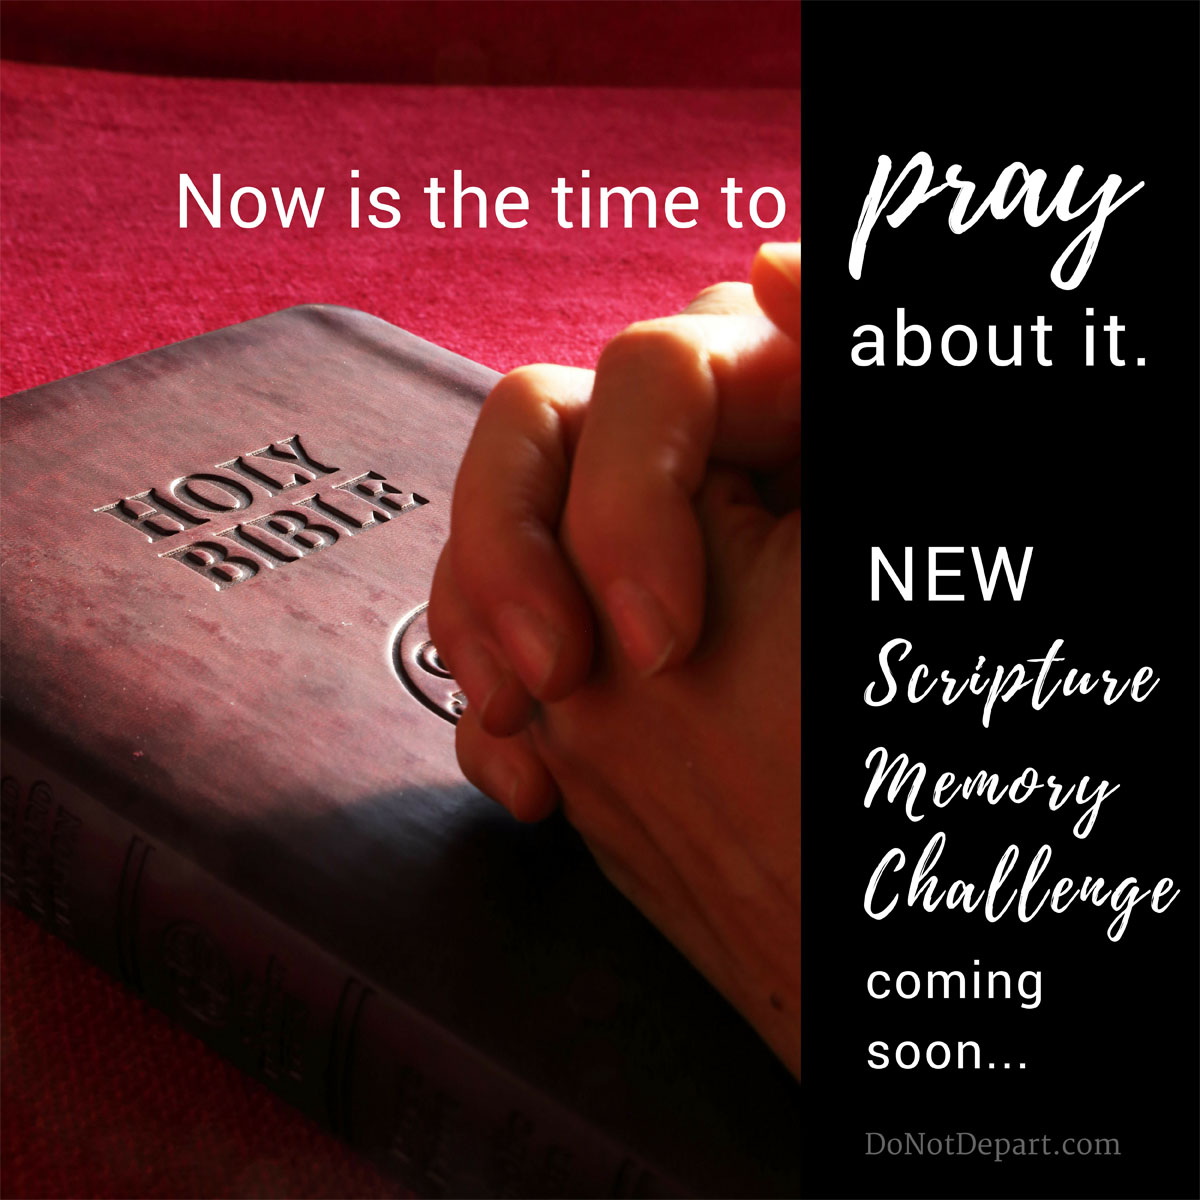 New Scripture Memory Challenge Coming Soon